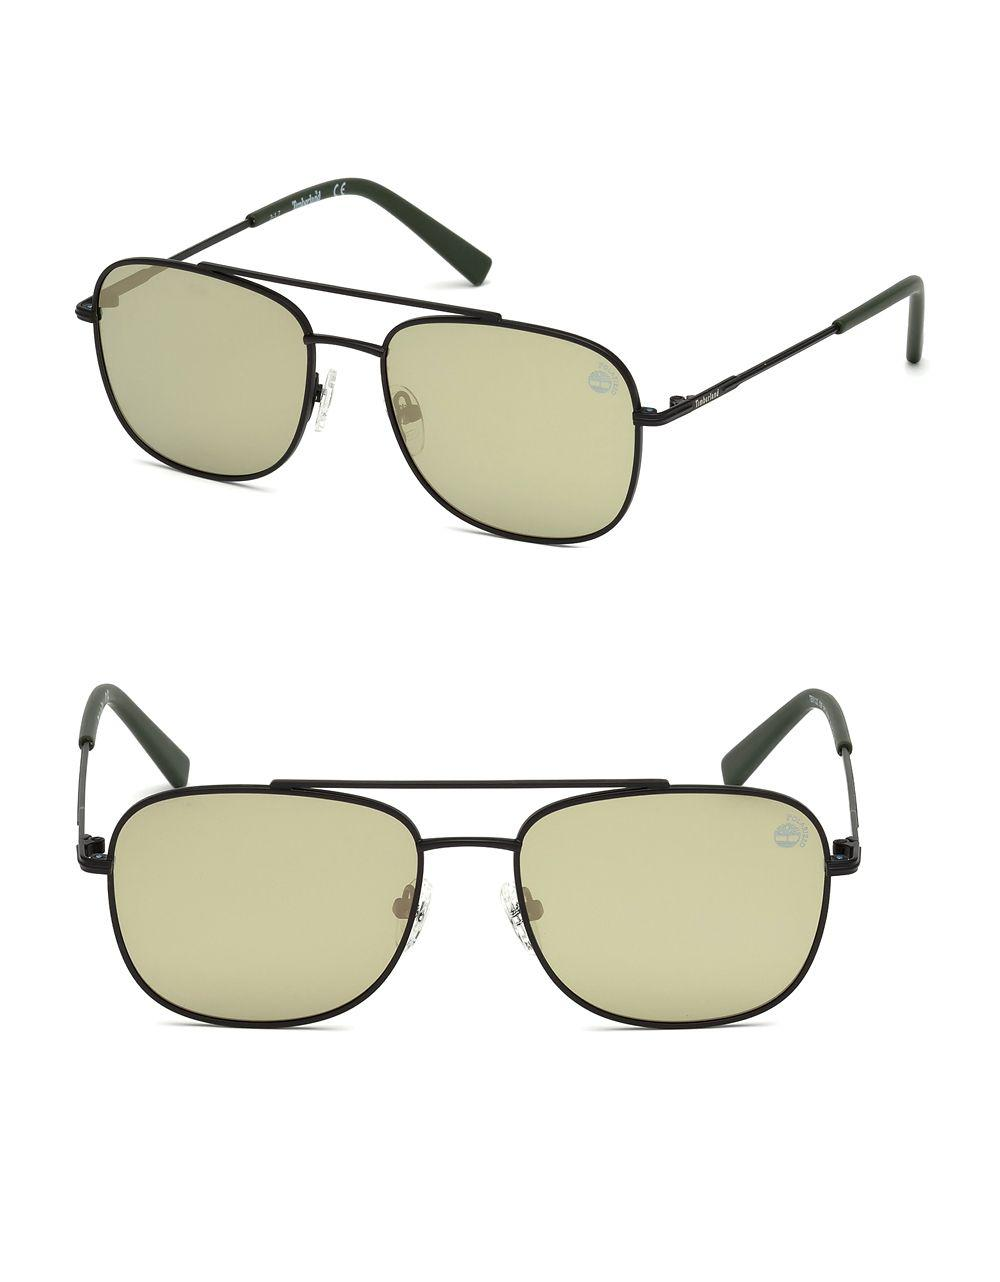 0df4c33bfbb Lyst - Timberland Stainless Steel Navigator Sunglasses in Black for Men